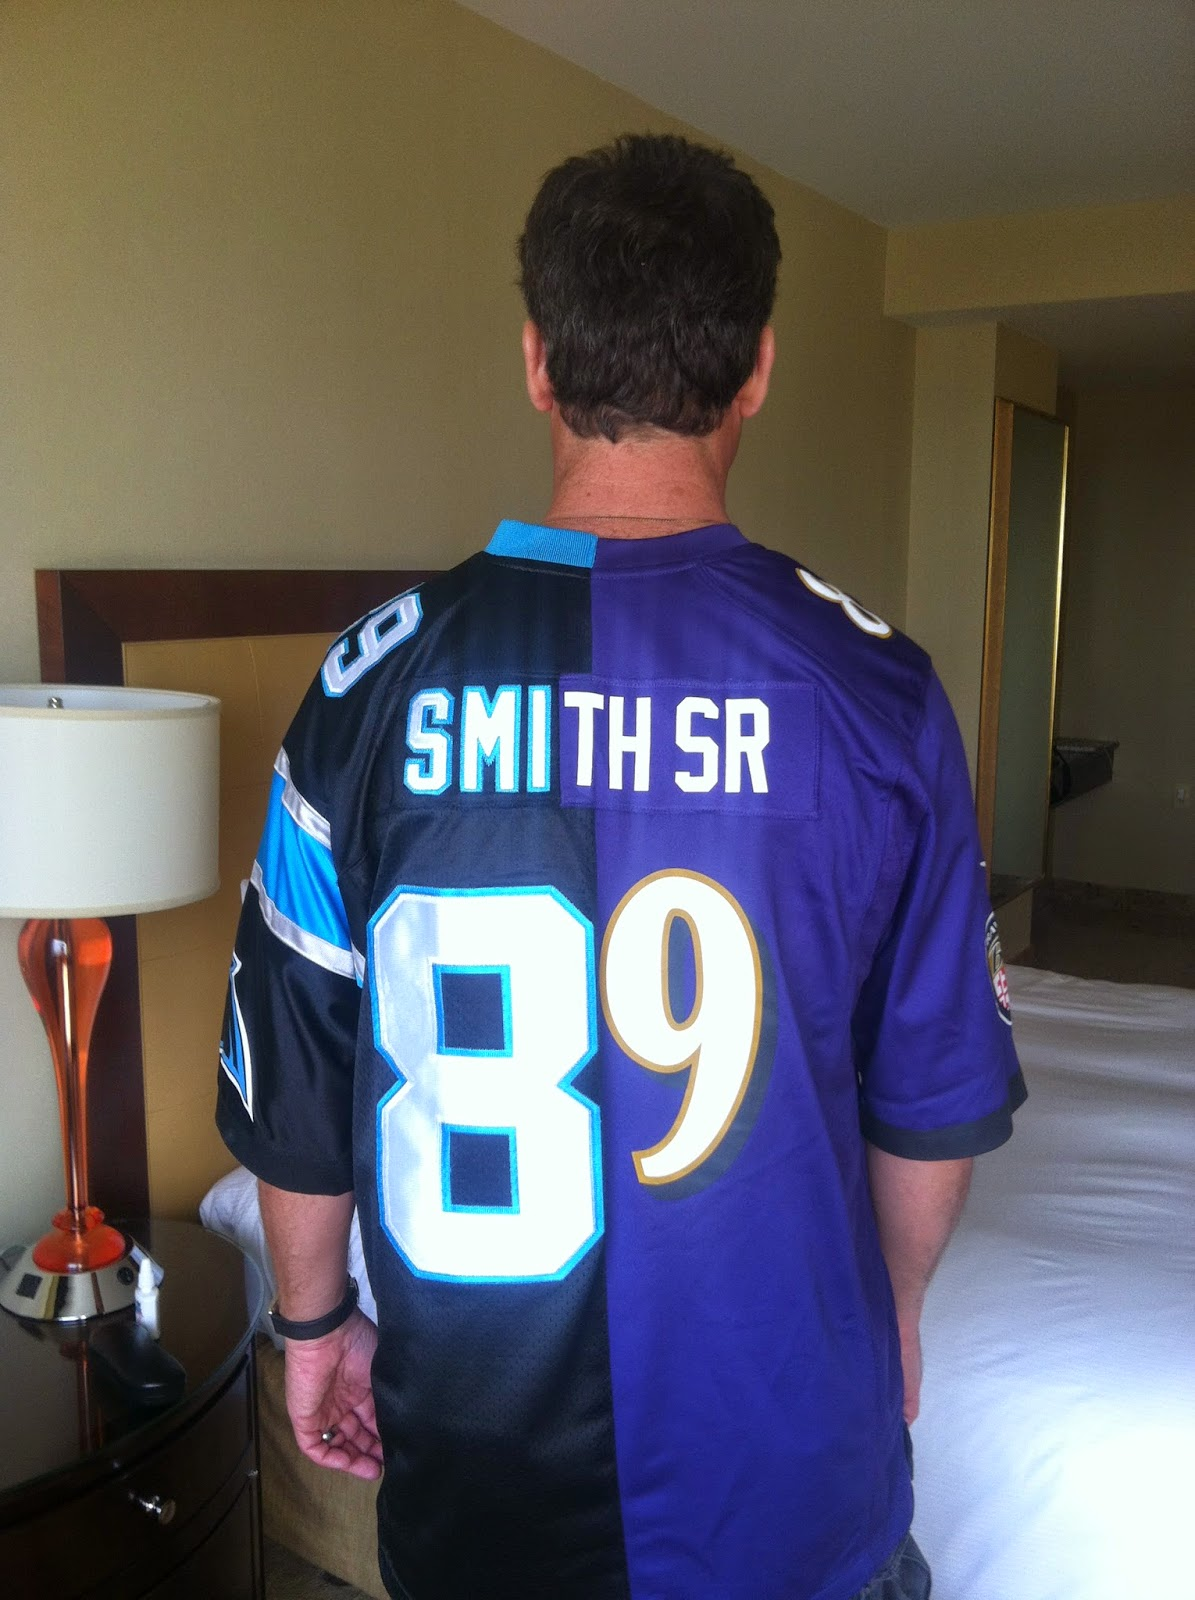 This is undoubtedly the most creative Steve Smith jersey I have ever seen.  The person in the picture d89d55f92c